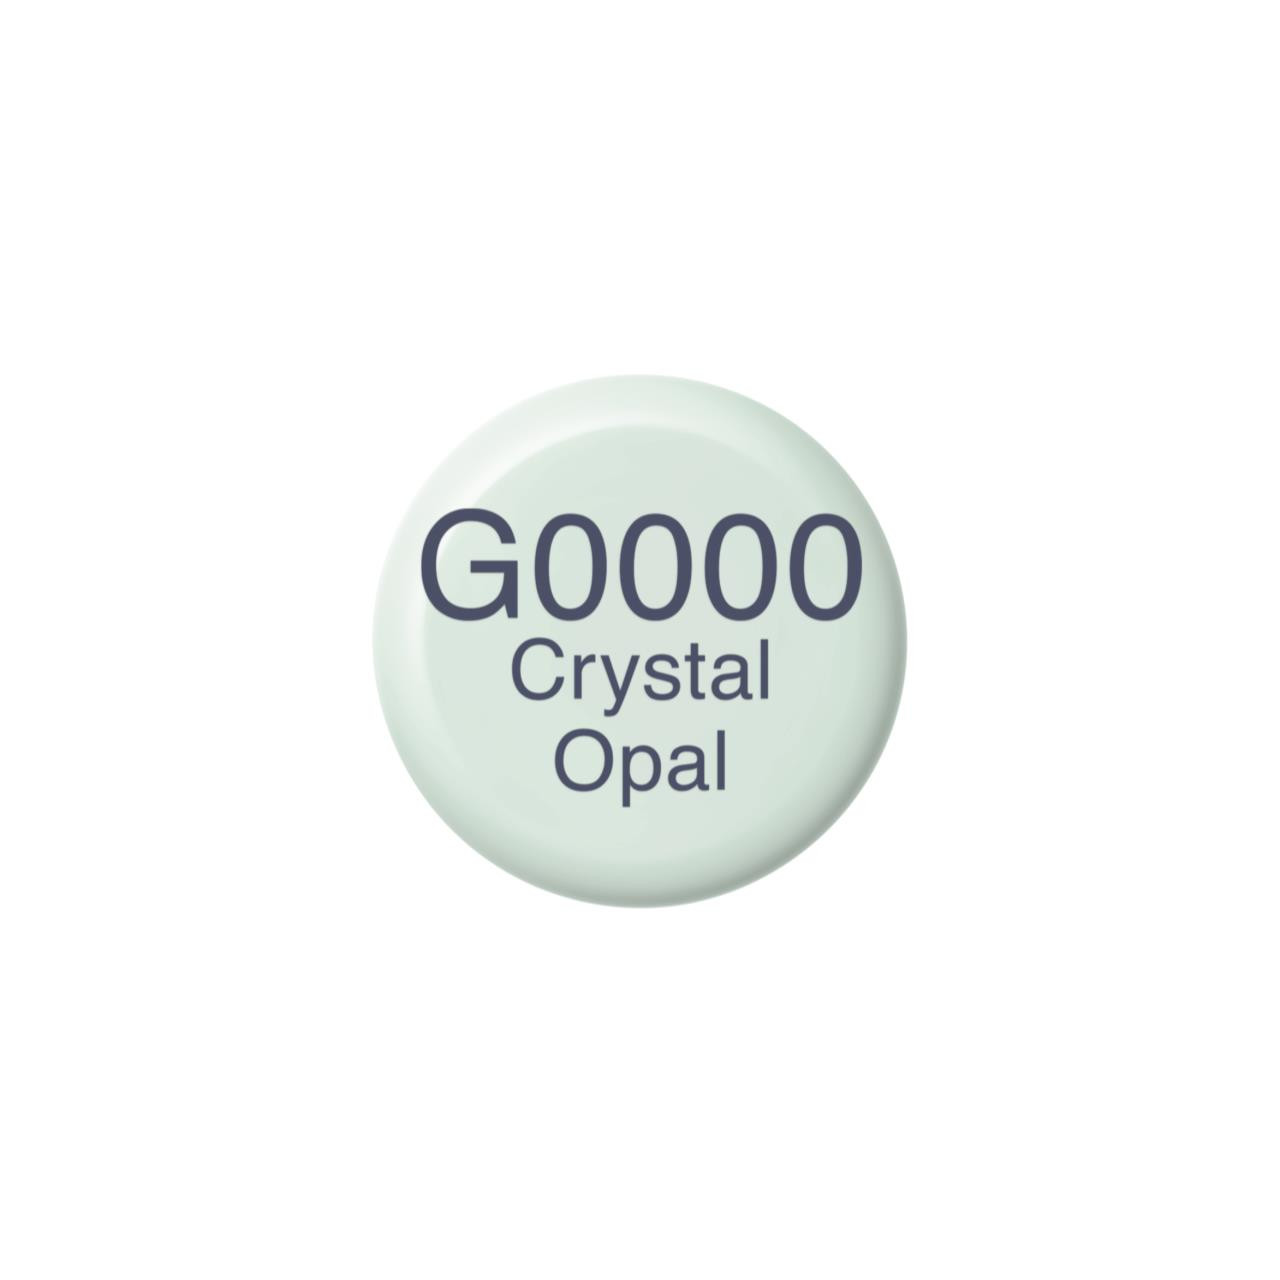 G0000 Crystal Opal, Copic Ink - 4511338057117